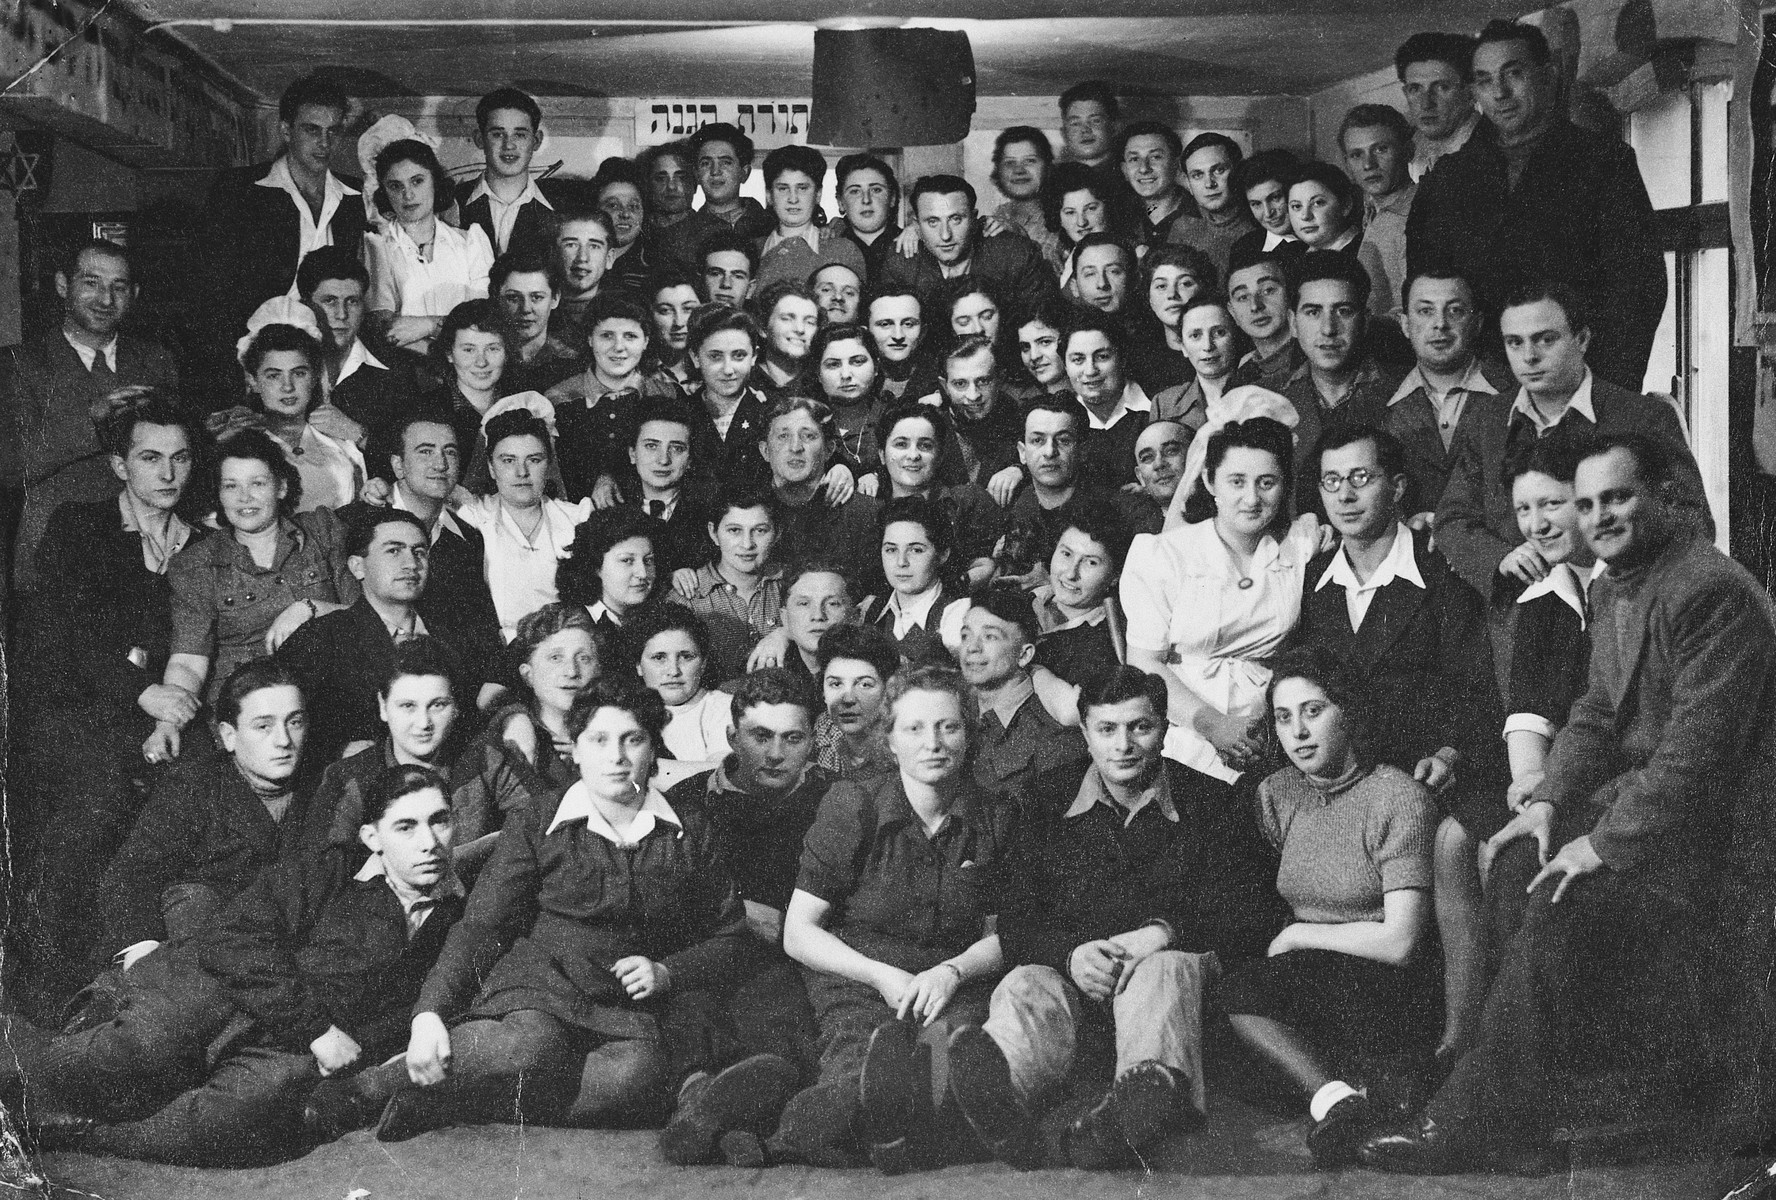 Group portrait of members of the Kibbutz Buchenwald hachshara (Zionist collective) in Geringshof, Germany, taken on the occasion of the marriage of four of its couples.